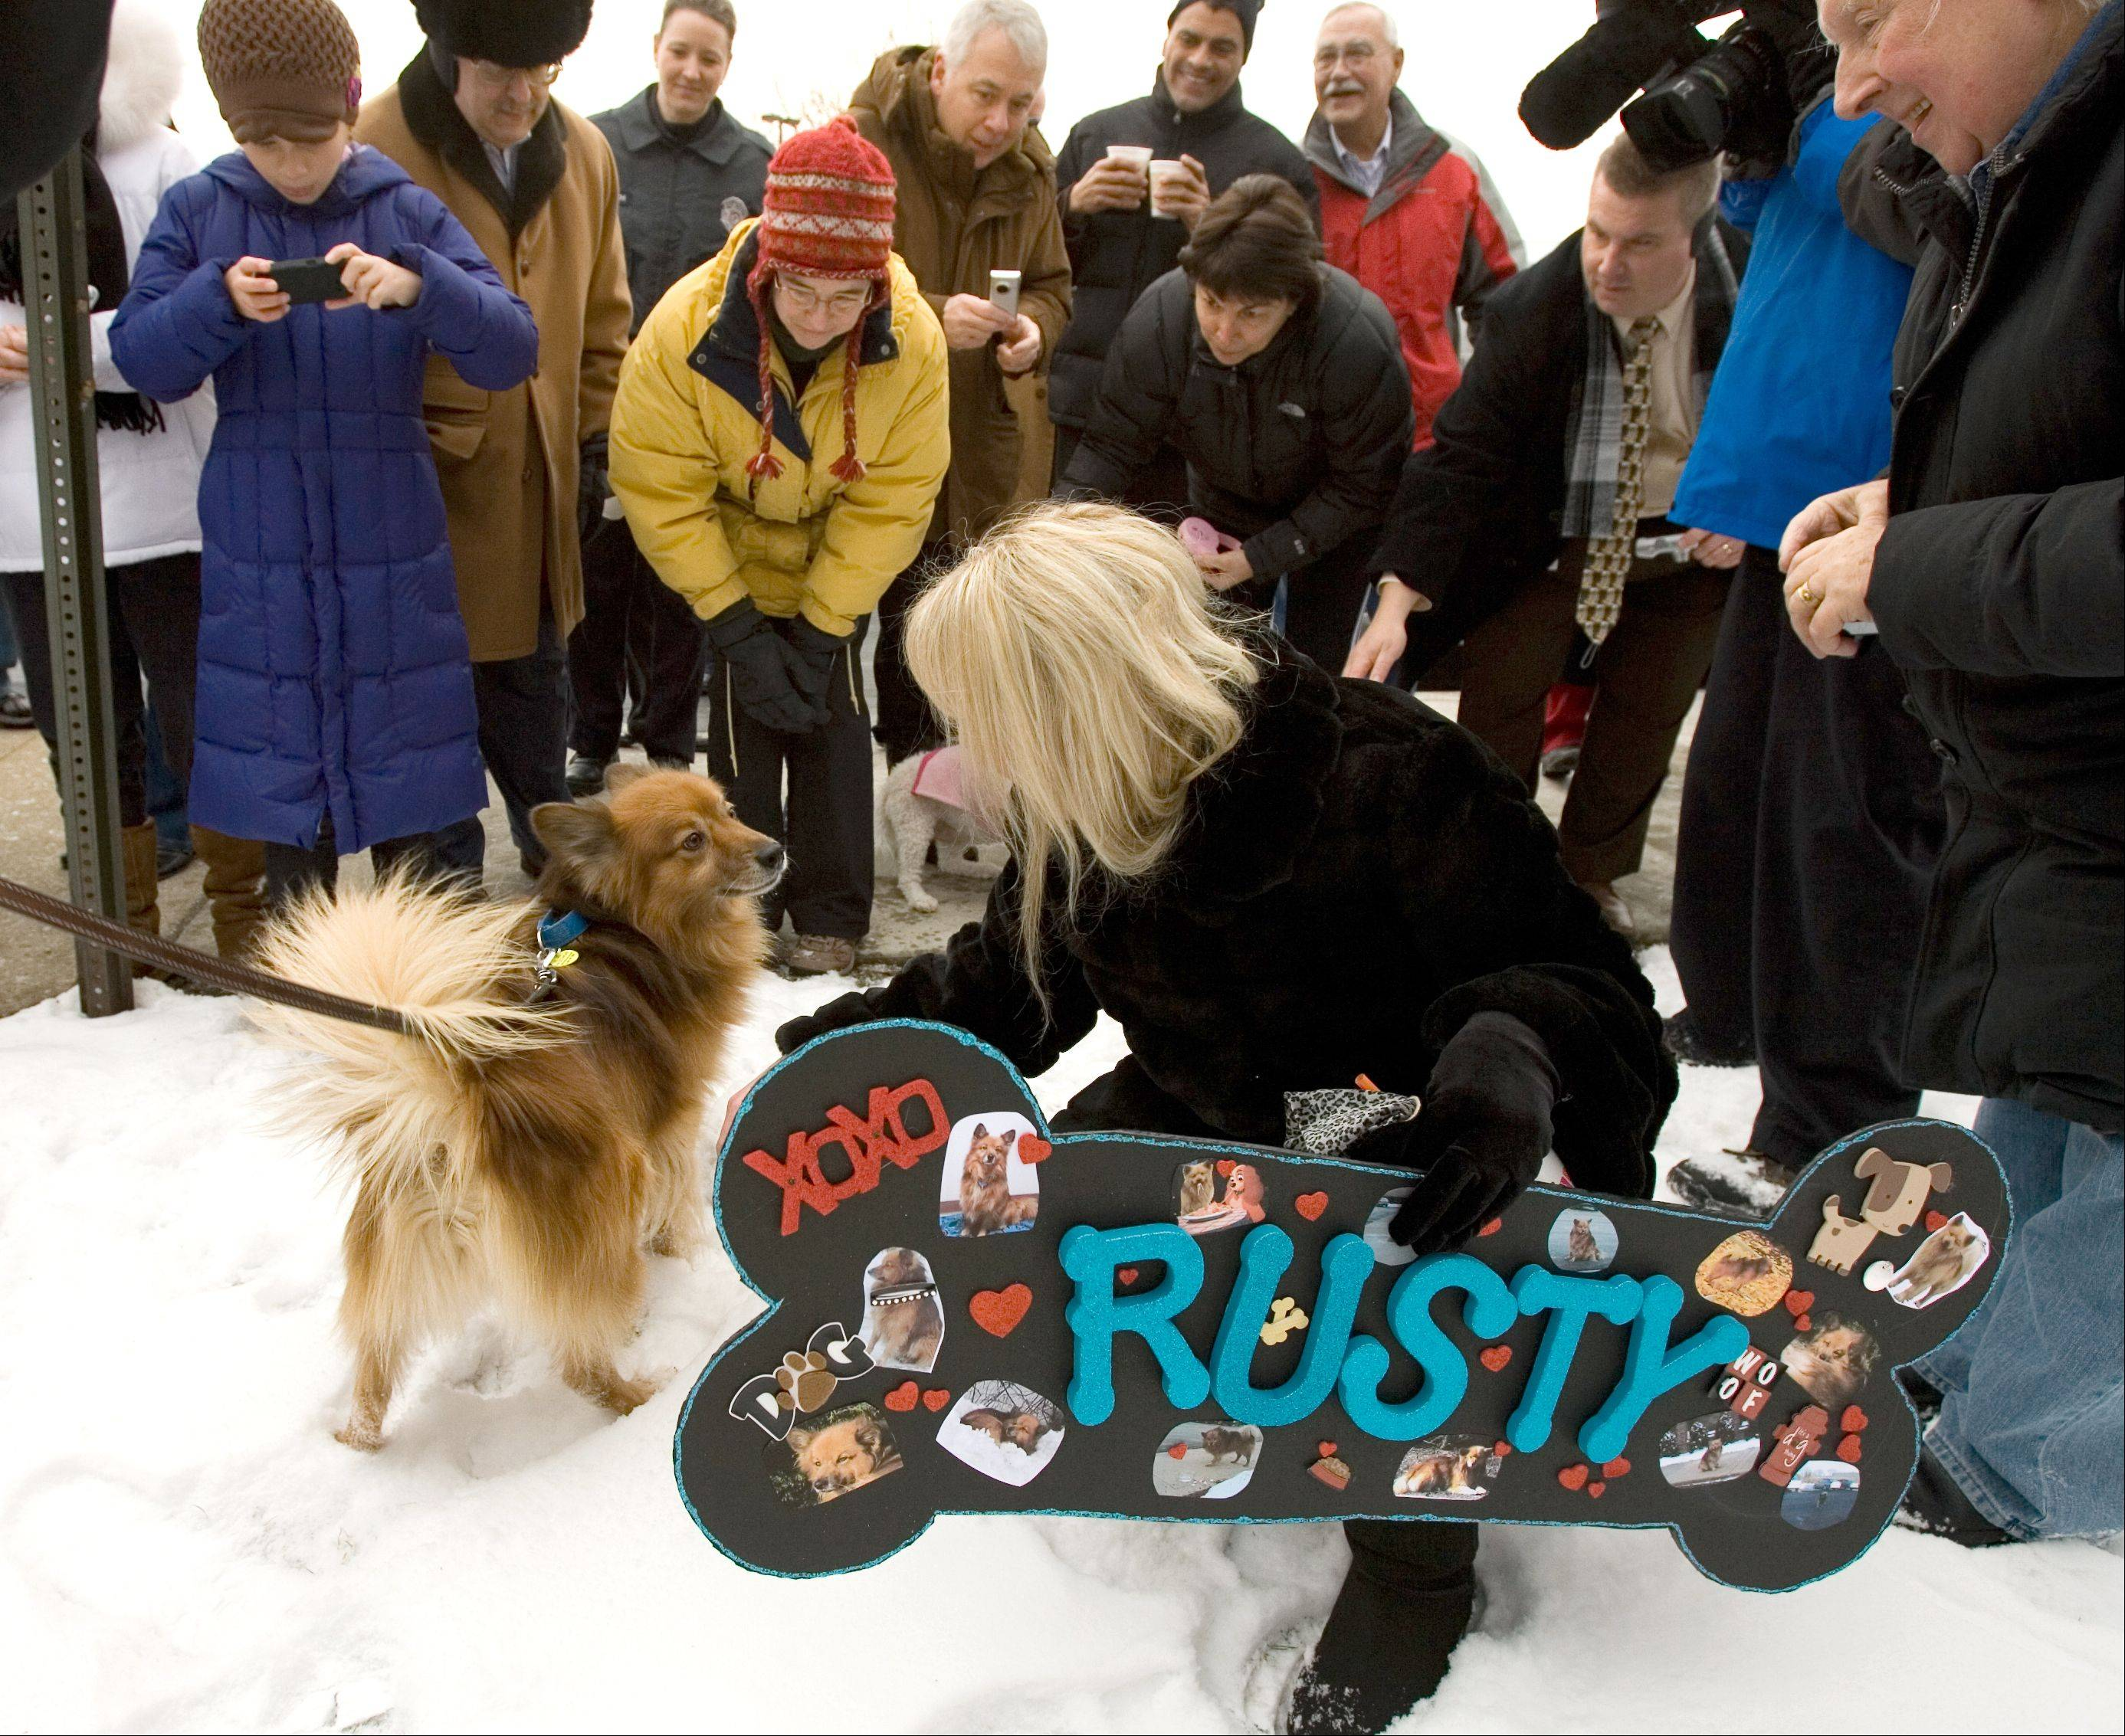 After three years of feeding Rusty in the parking lot near her Oak Brook office, Julie Gleason didn't get close enough to touch the stray dog until this send-off party in January 2011. Now Gleason keeps tabs on the beloved dog through almost daily Facebook entries from Rusty's new owner in Utah.